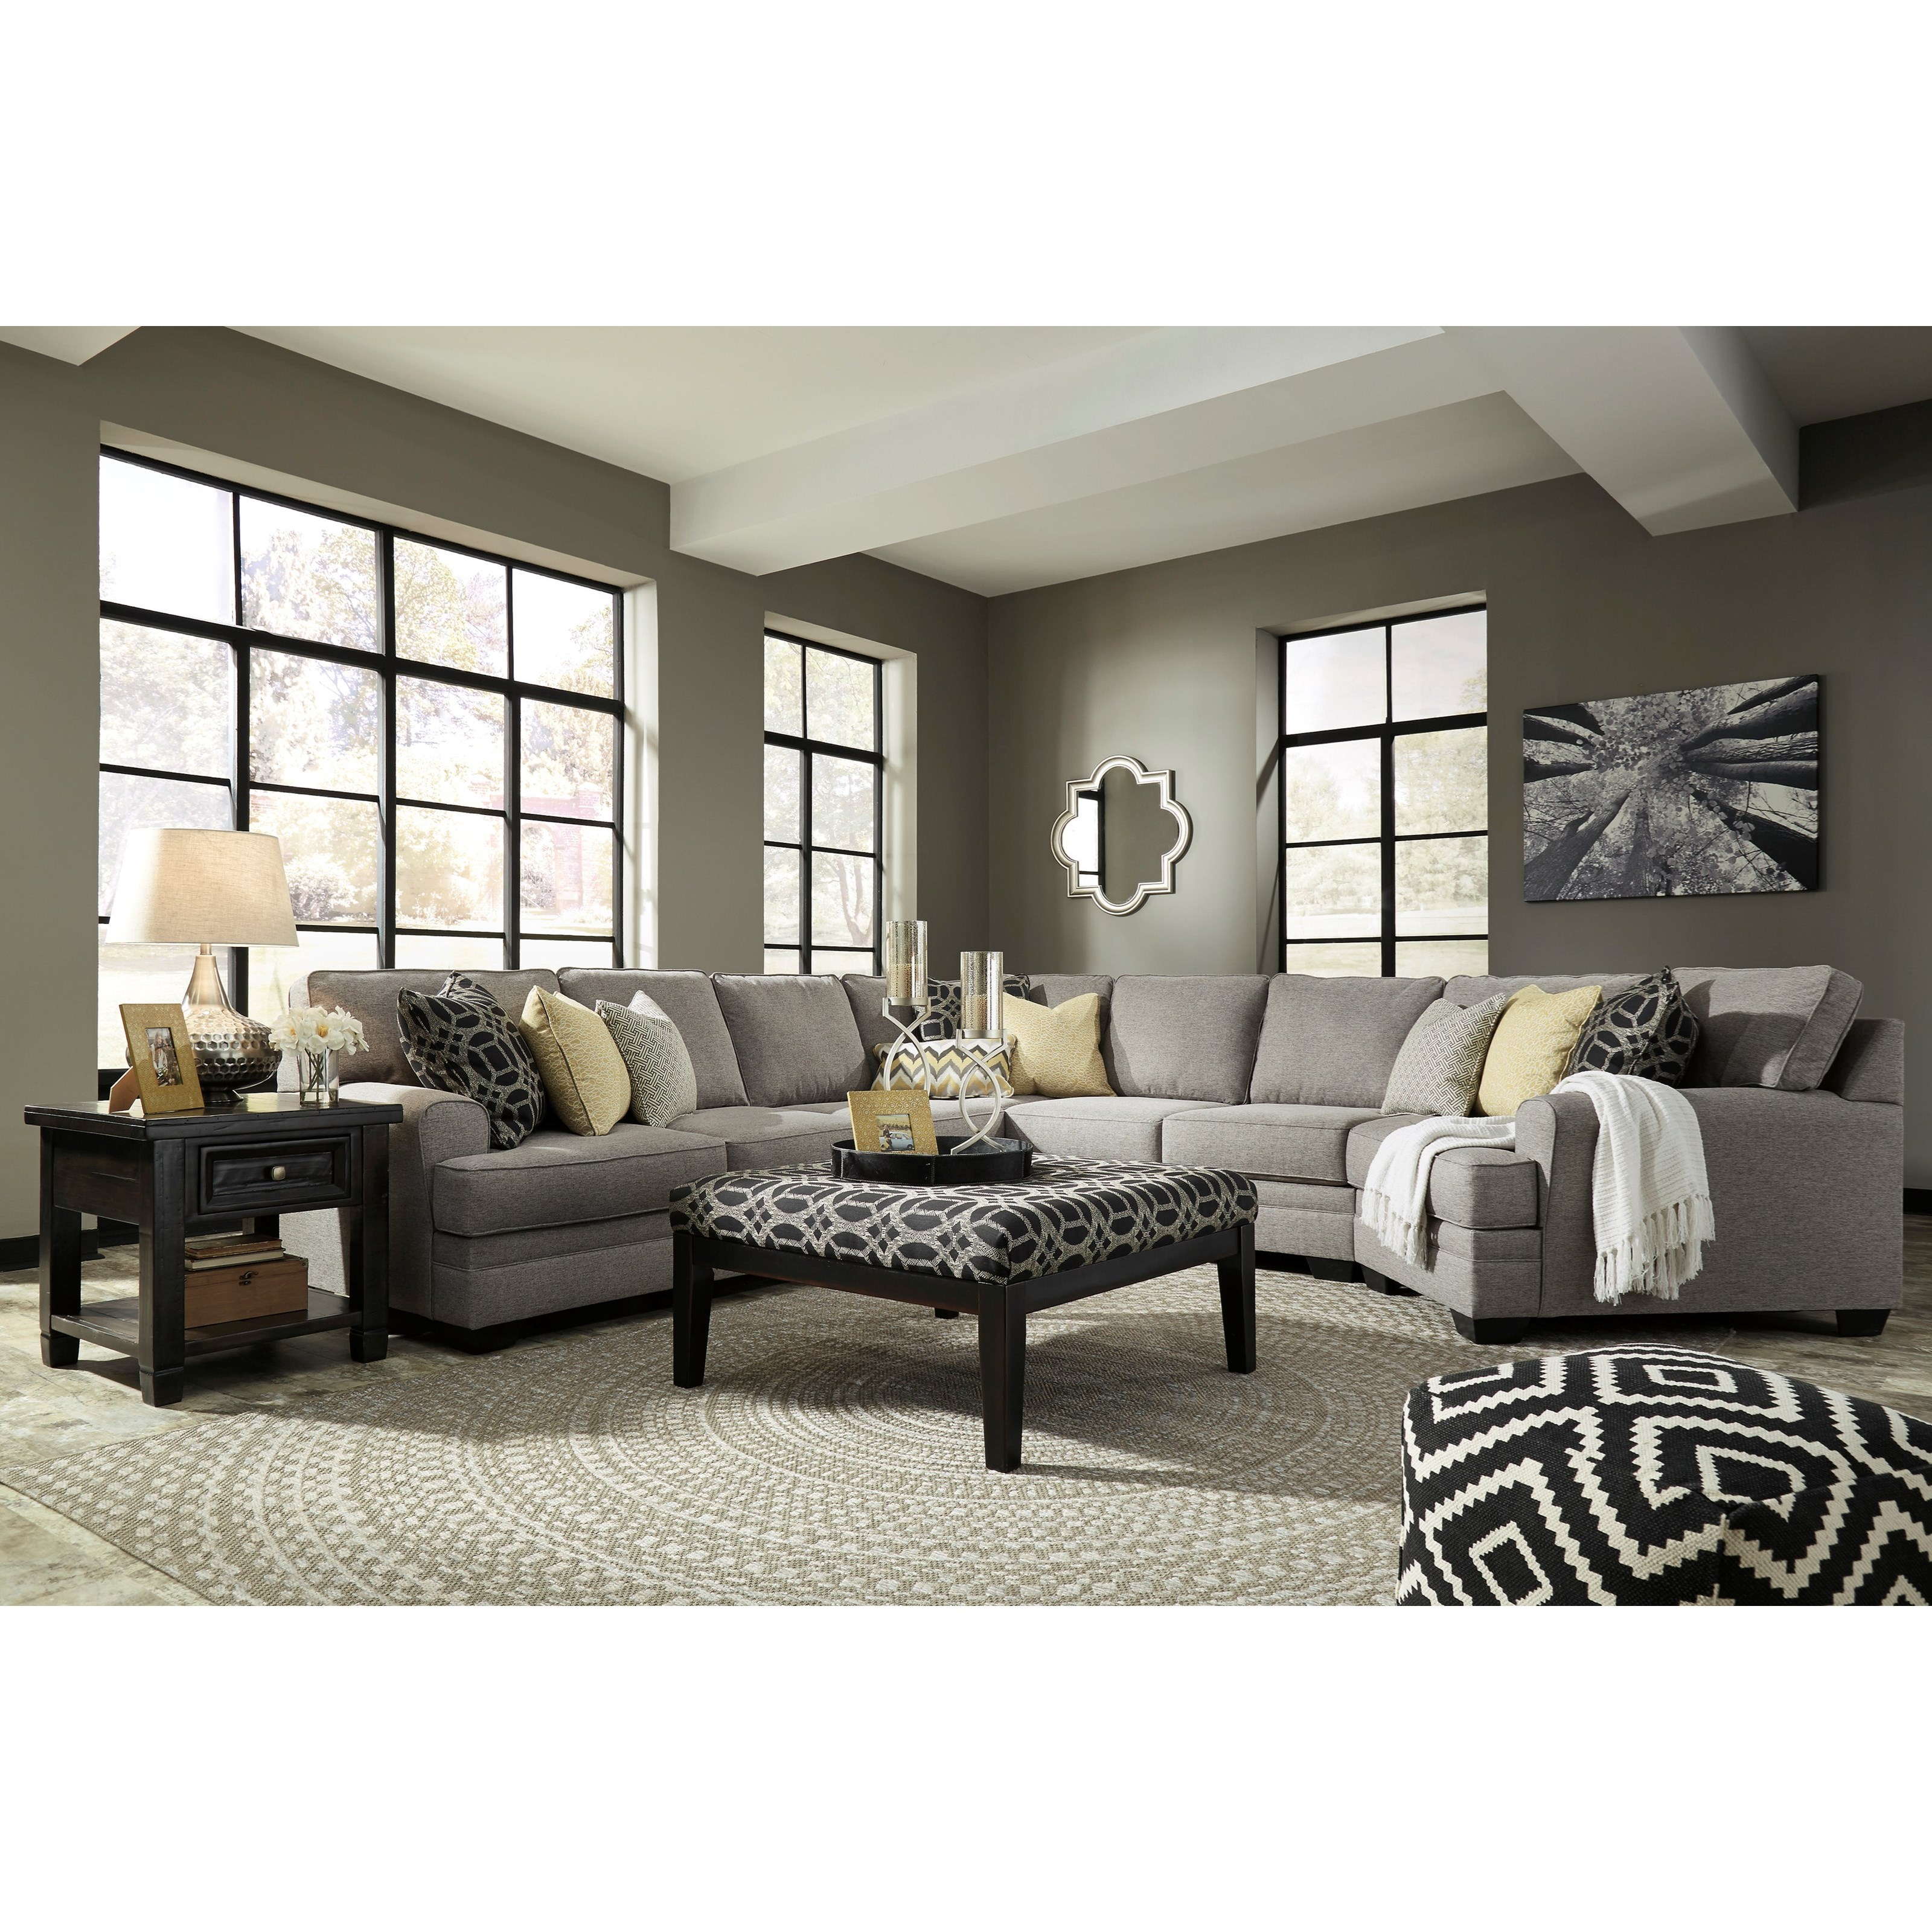 Benchcraft cresson stationary living room group del sol for Living room furniture groups